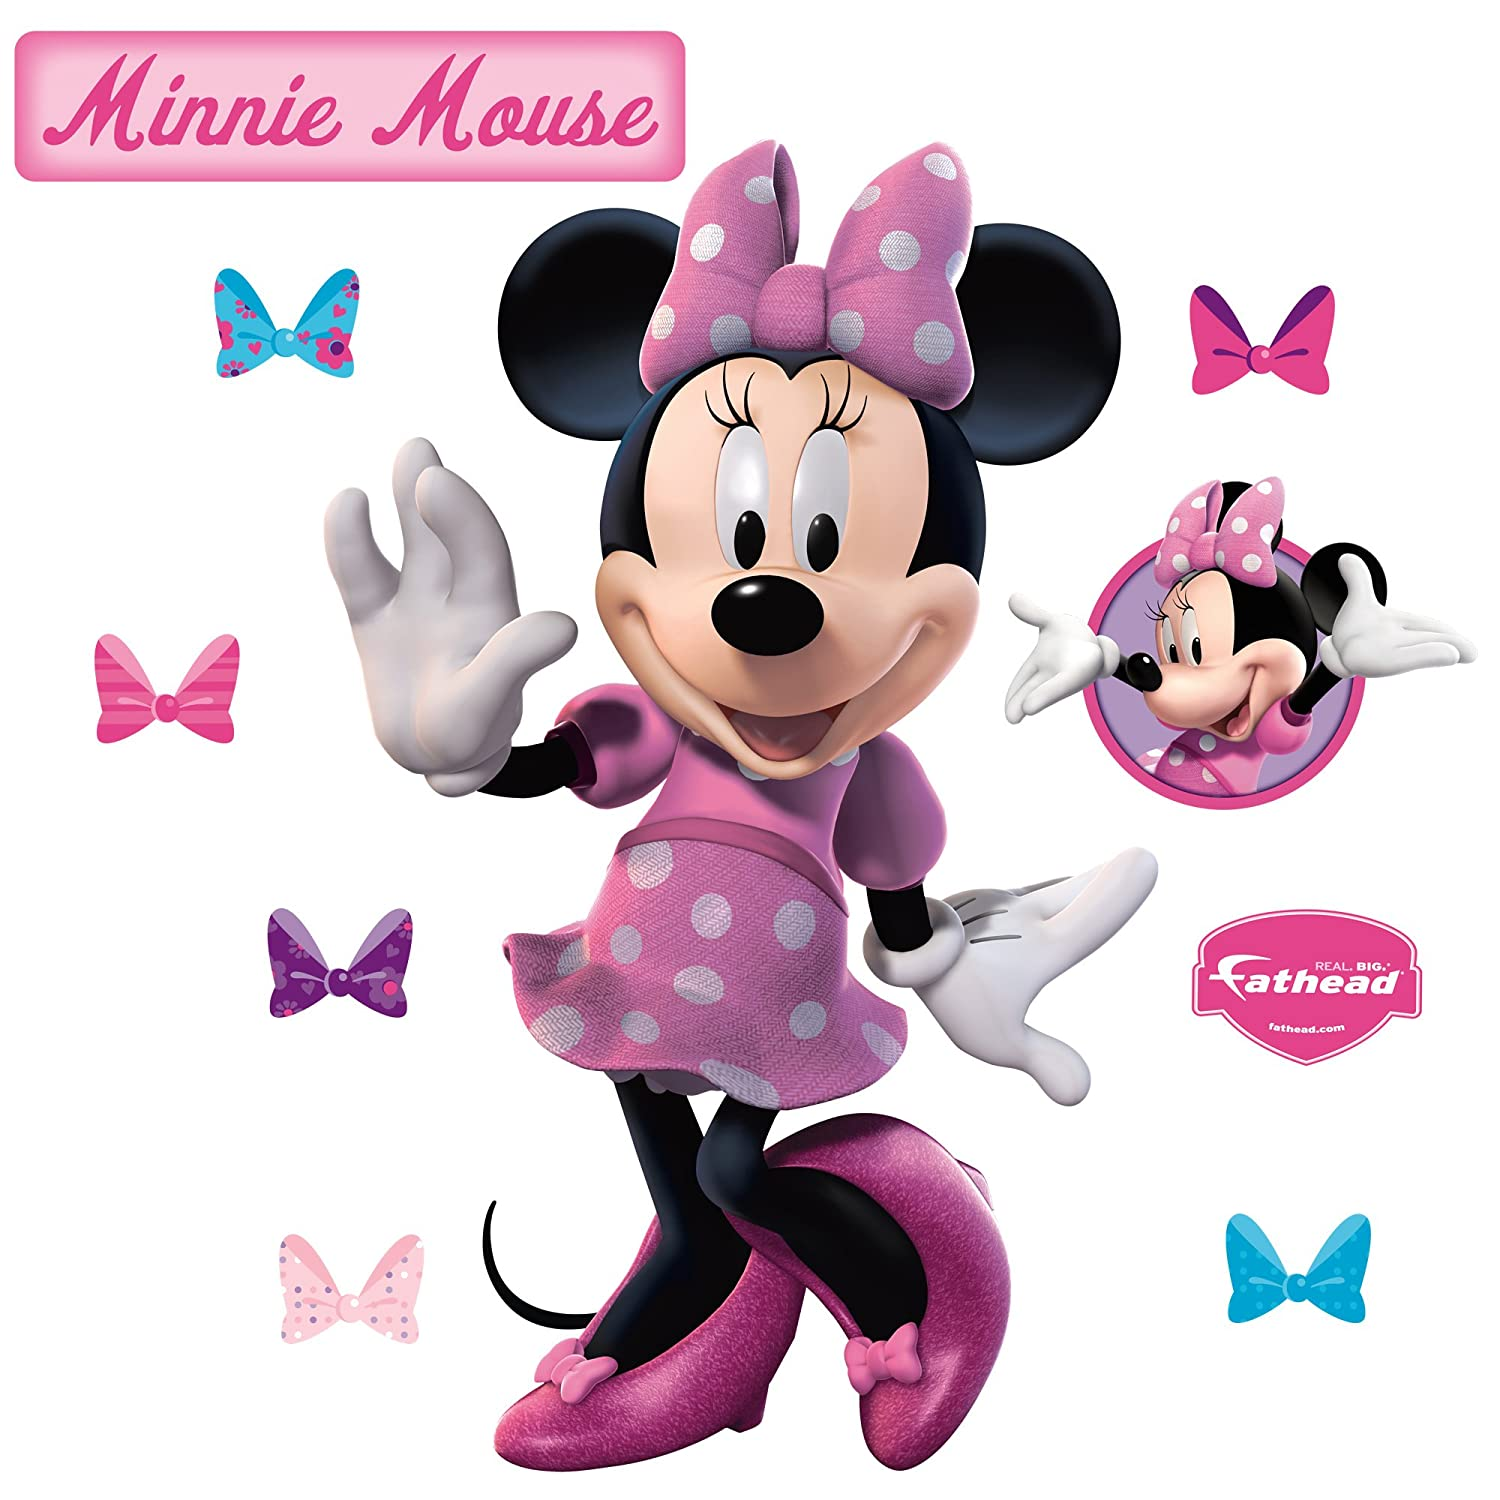 Fathead 74 74527 Wall Decal Minnie Mouse Amazon Home Kitchen